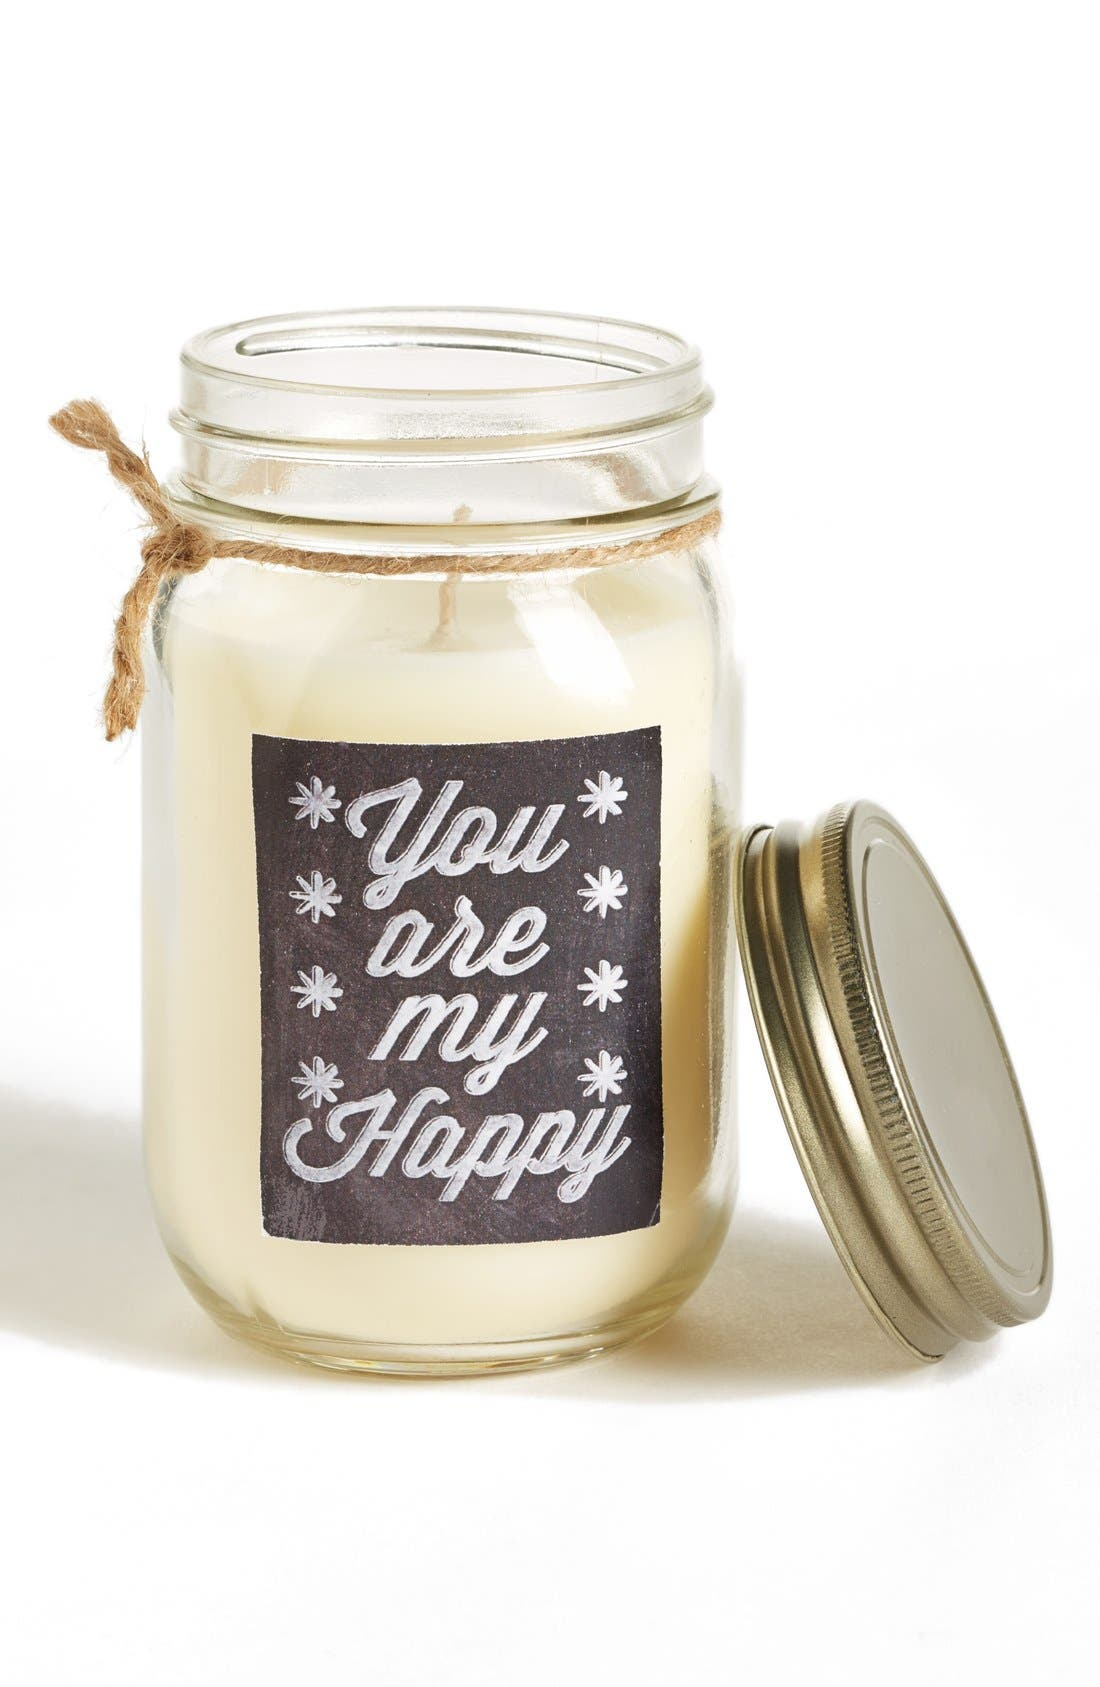 Alternate Image 1 Selected - Primitives by Kathy 'You Are My Happy - Tranquil Spa' Mason Jar Candle